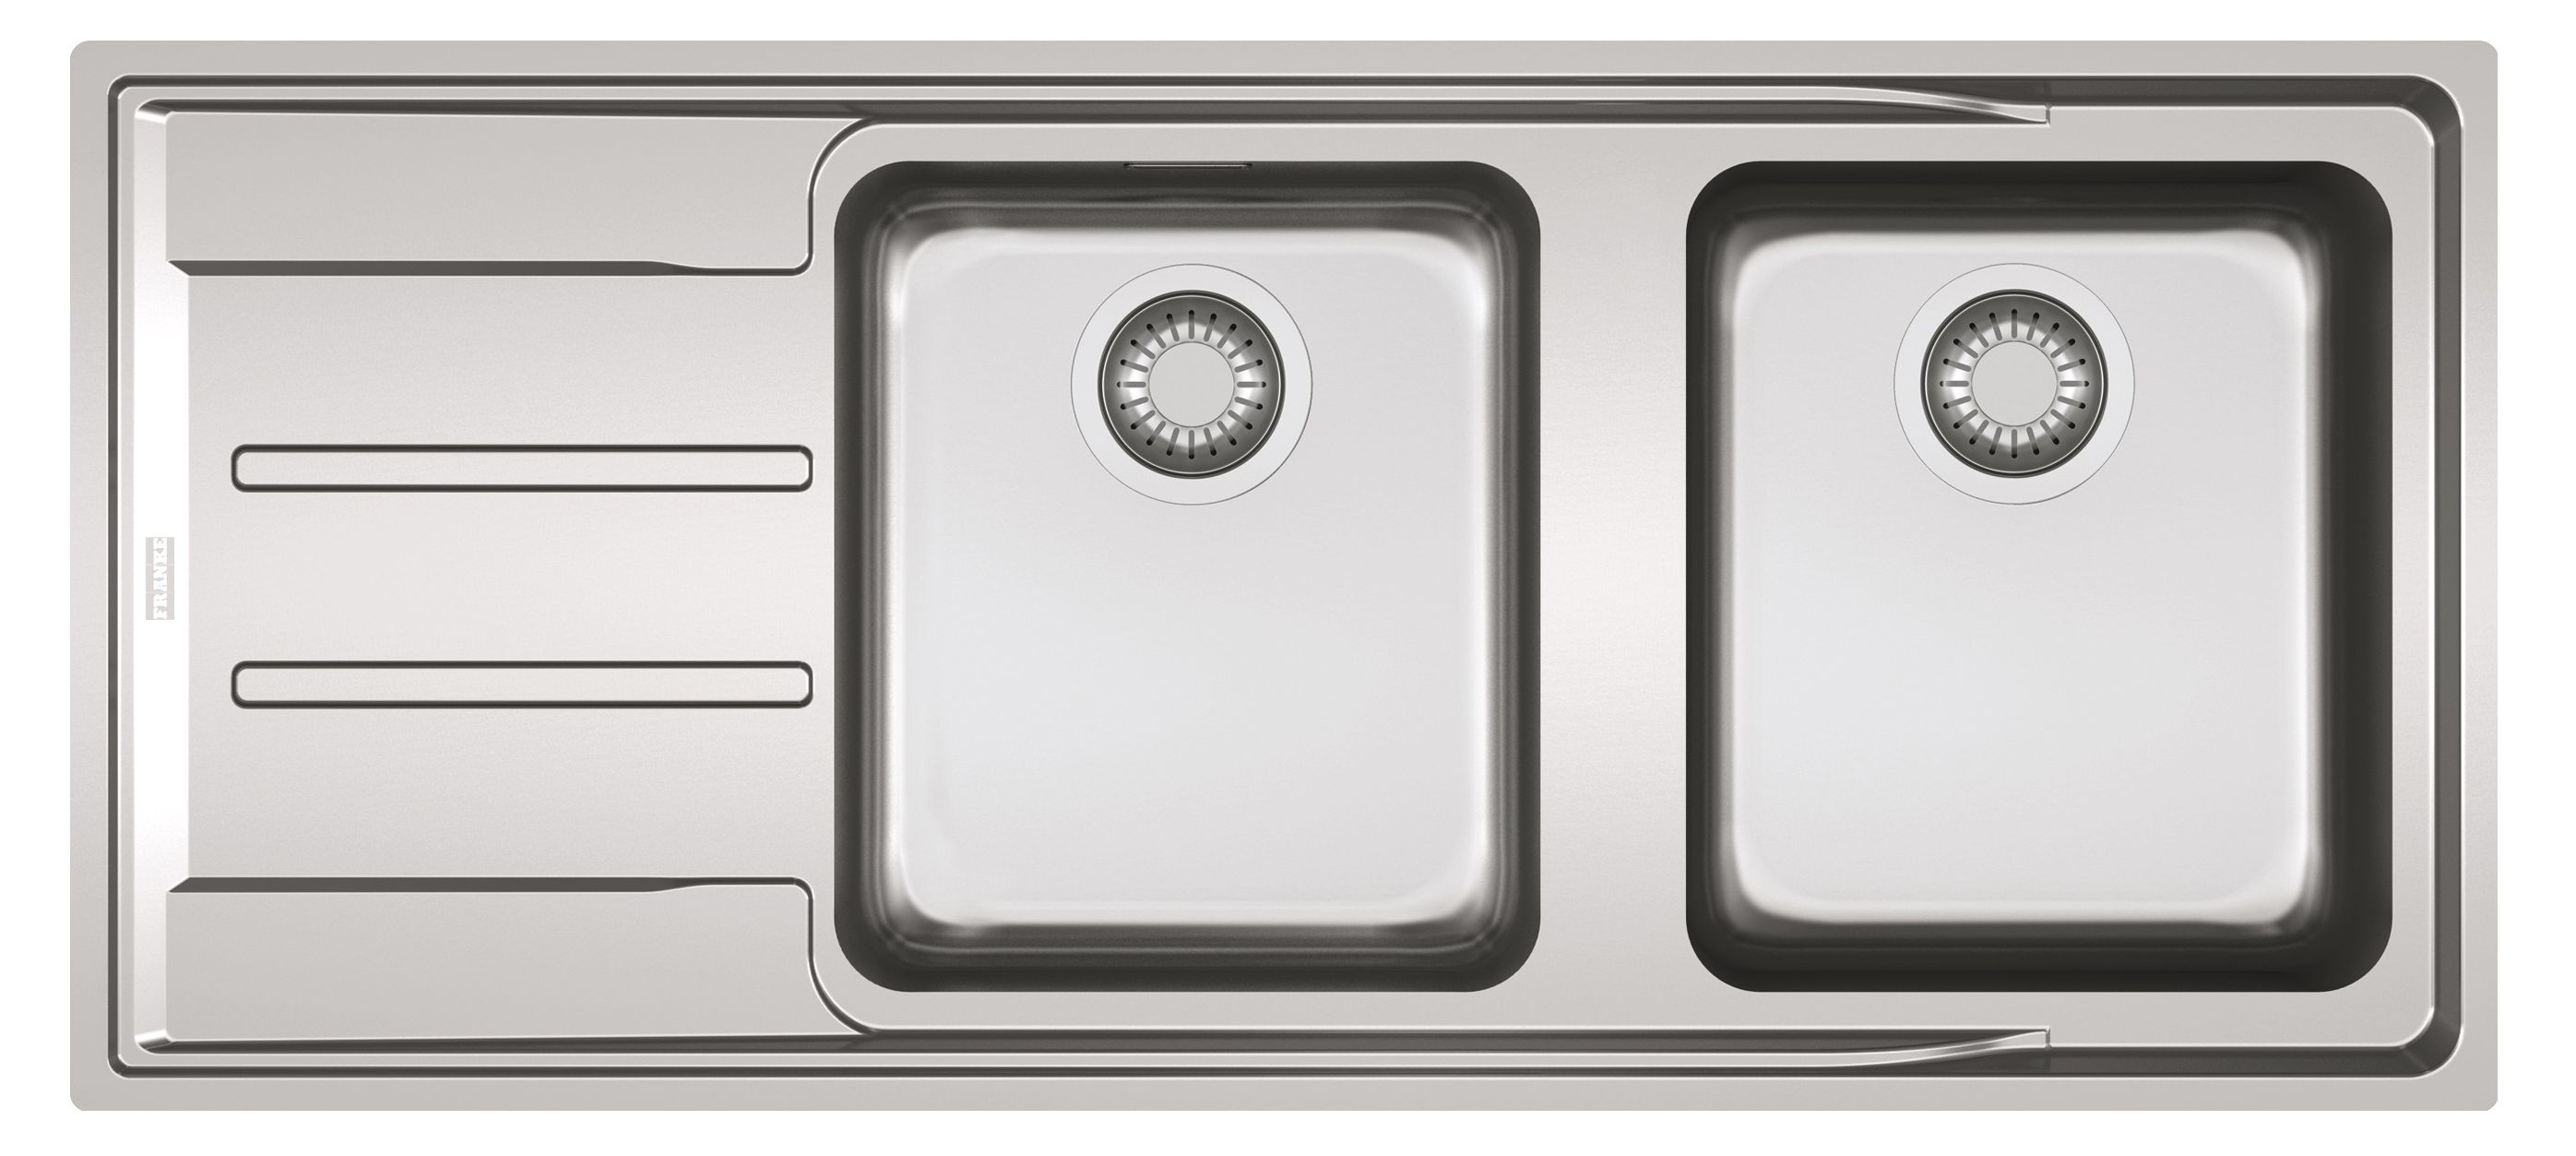 28+ [buyer s guide to kitchen sinks help ideas diy at b q]